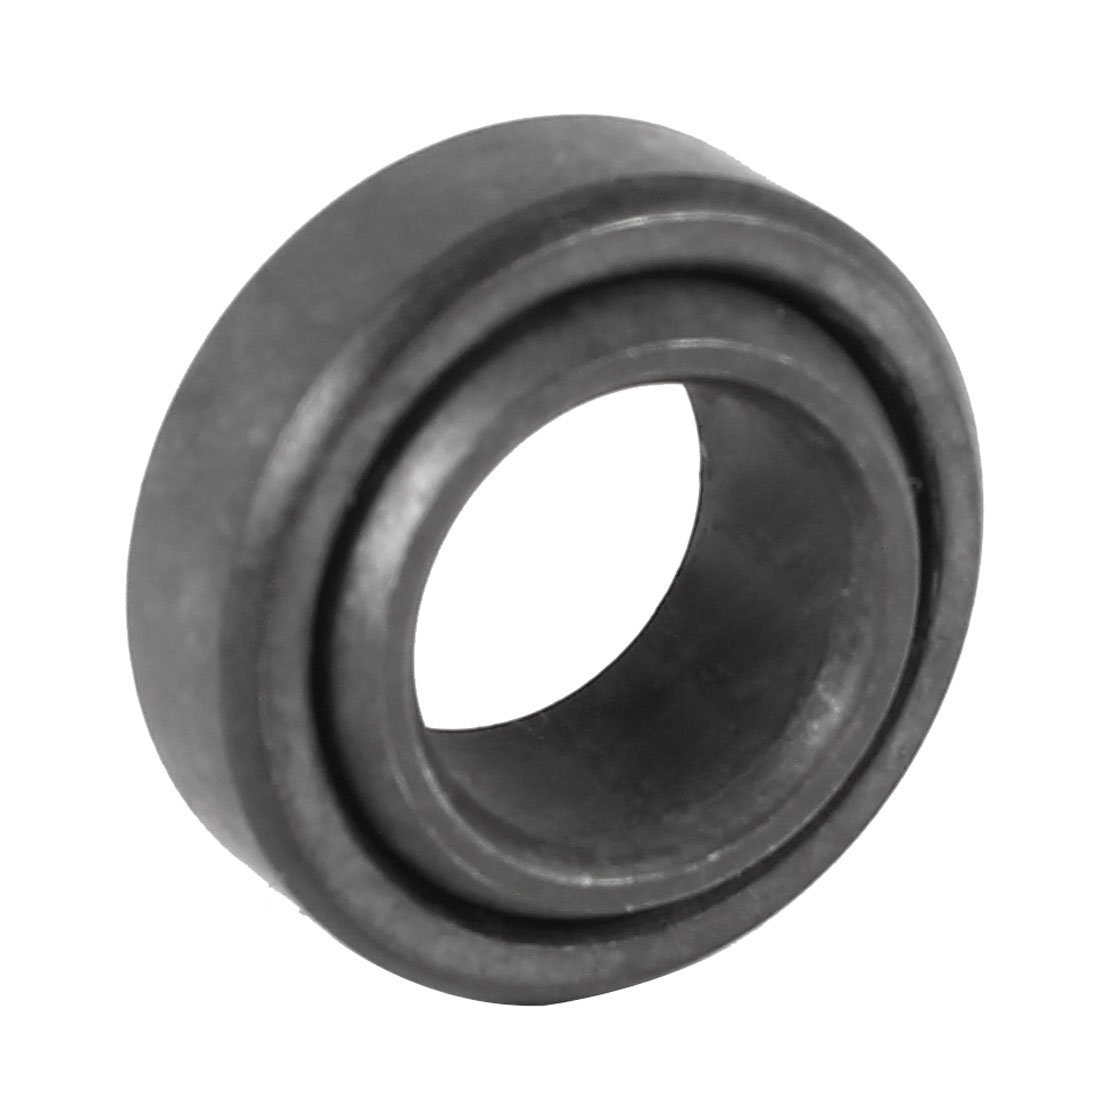 GE17 Black Metal Spherical Plain Radial Oscillating Bearing 17 x 22 x 10mm